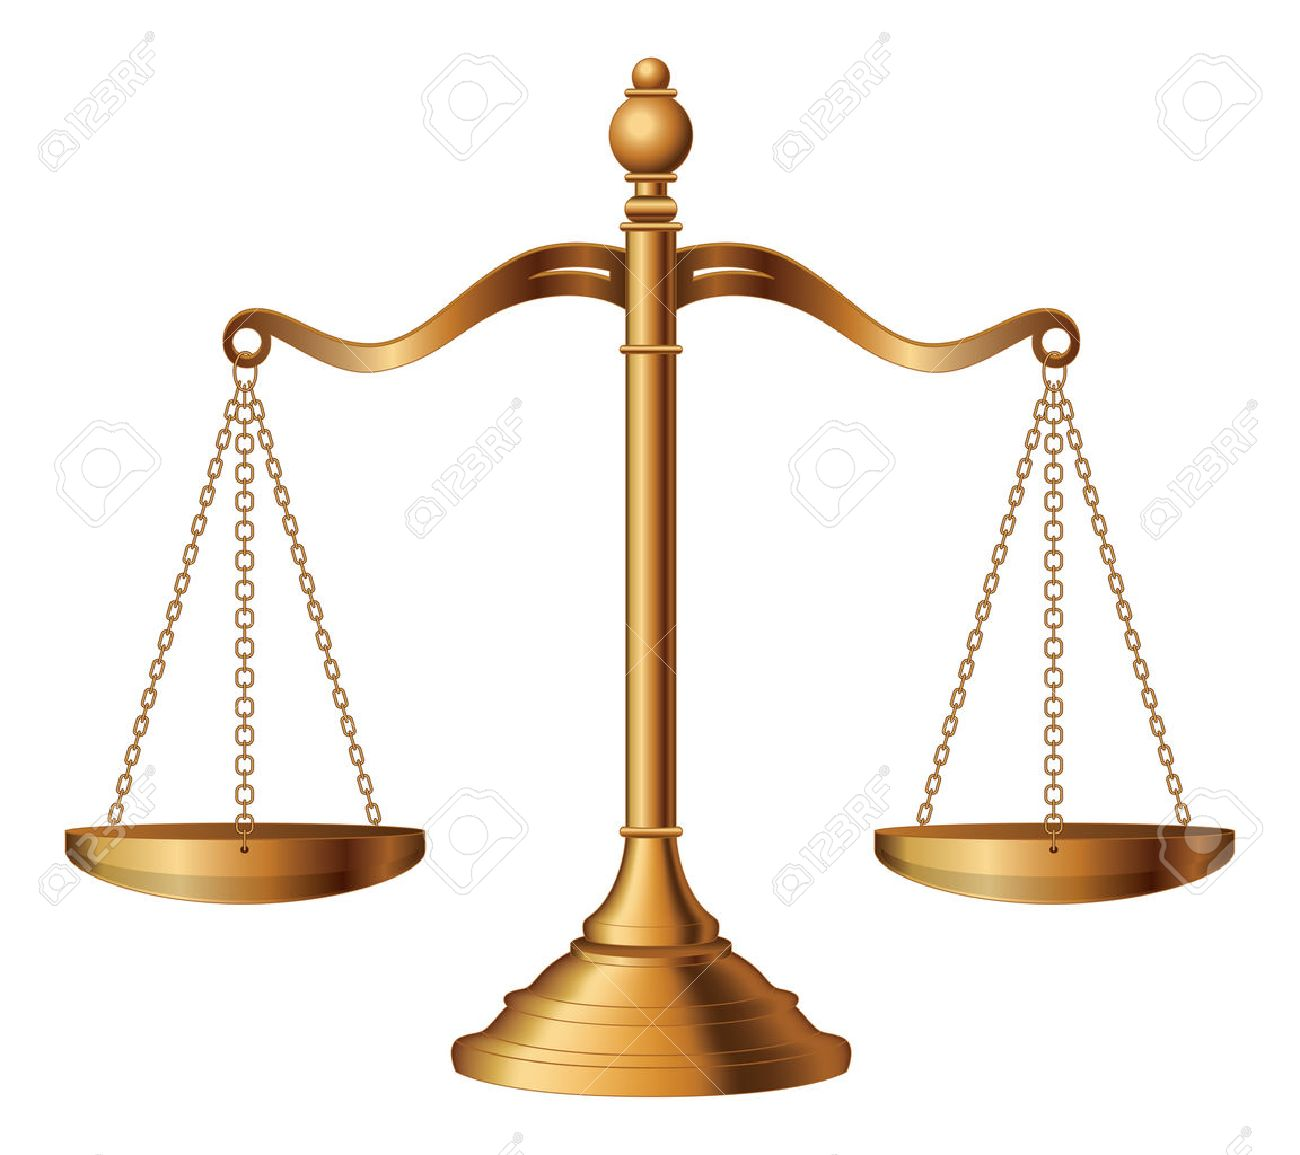 Scales Of Justice Clipart